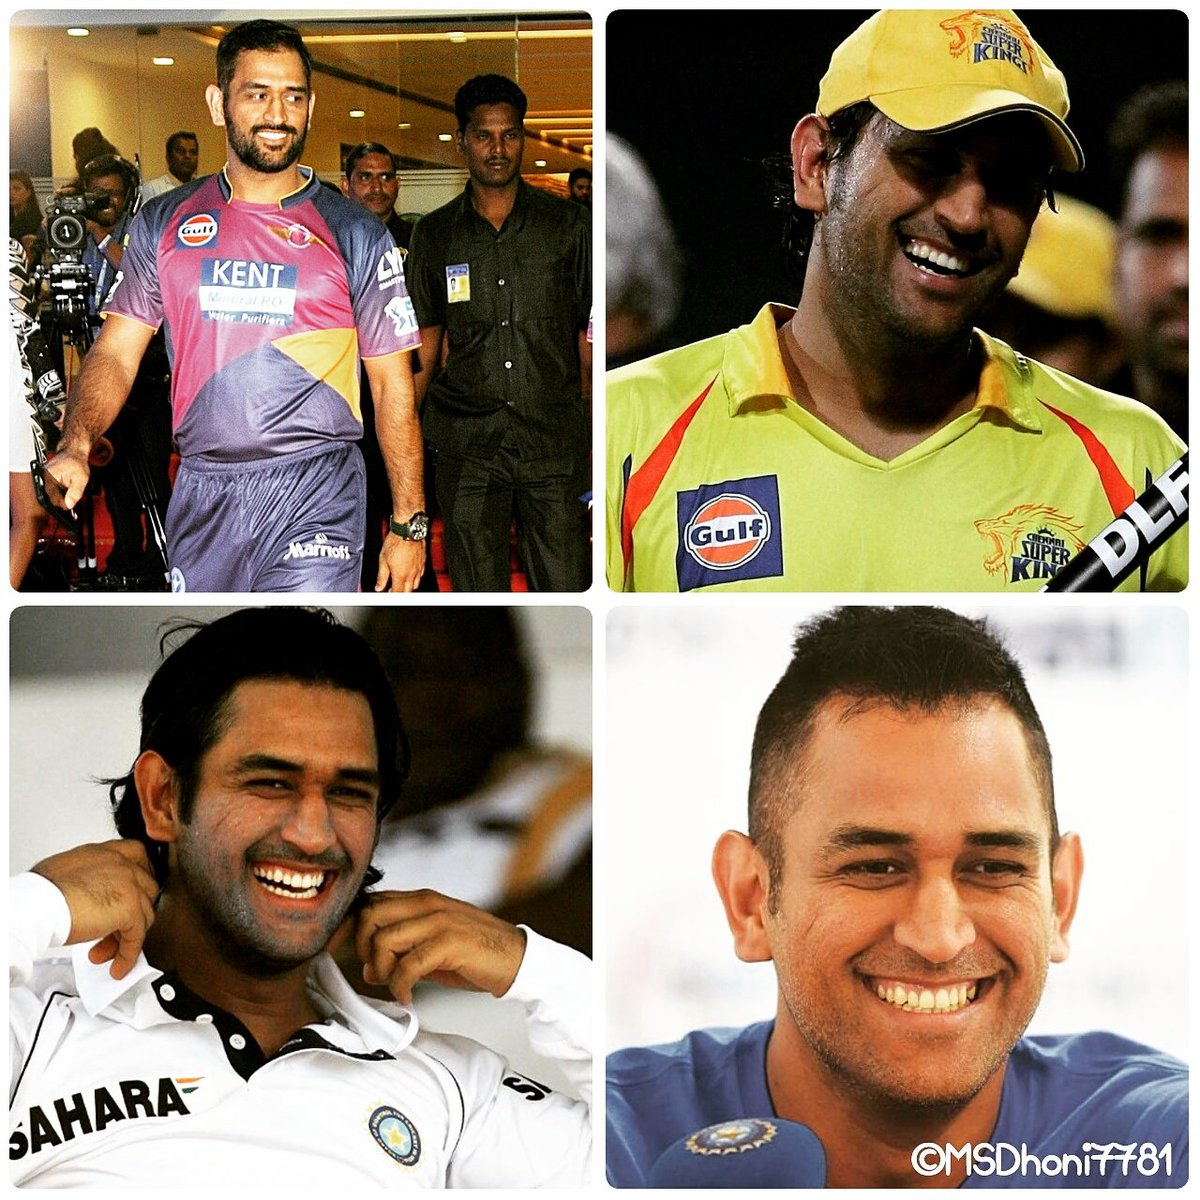 Today is #InternationalDayOfHappiness  @msdhoni #Smiling #MSDhoni #Dhoni #Mahi #CaptainCool #SmileAlways @ChennaiIPL @RPSupergiants @BCCI<br>http://pic.twitter.com/pnJb67ZbVb